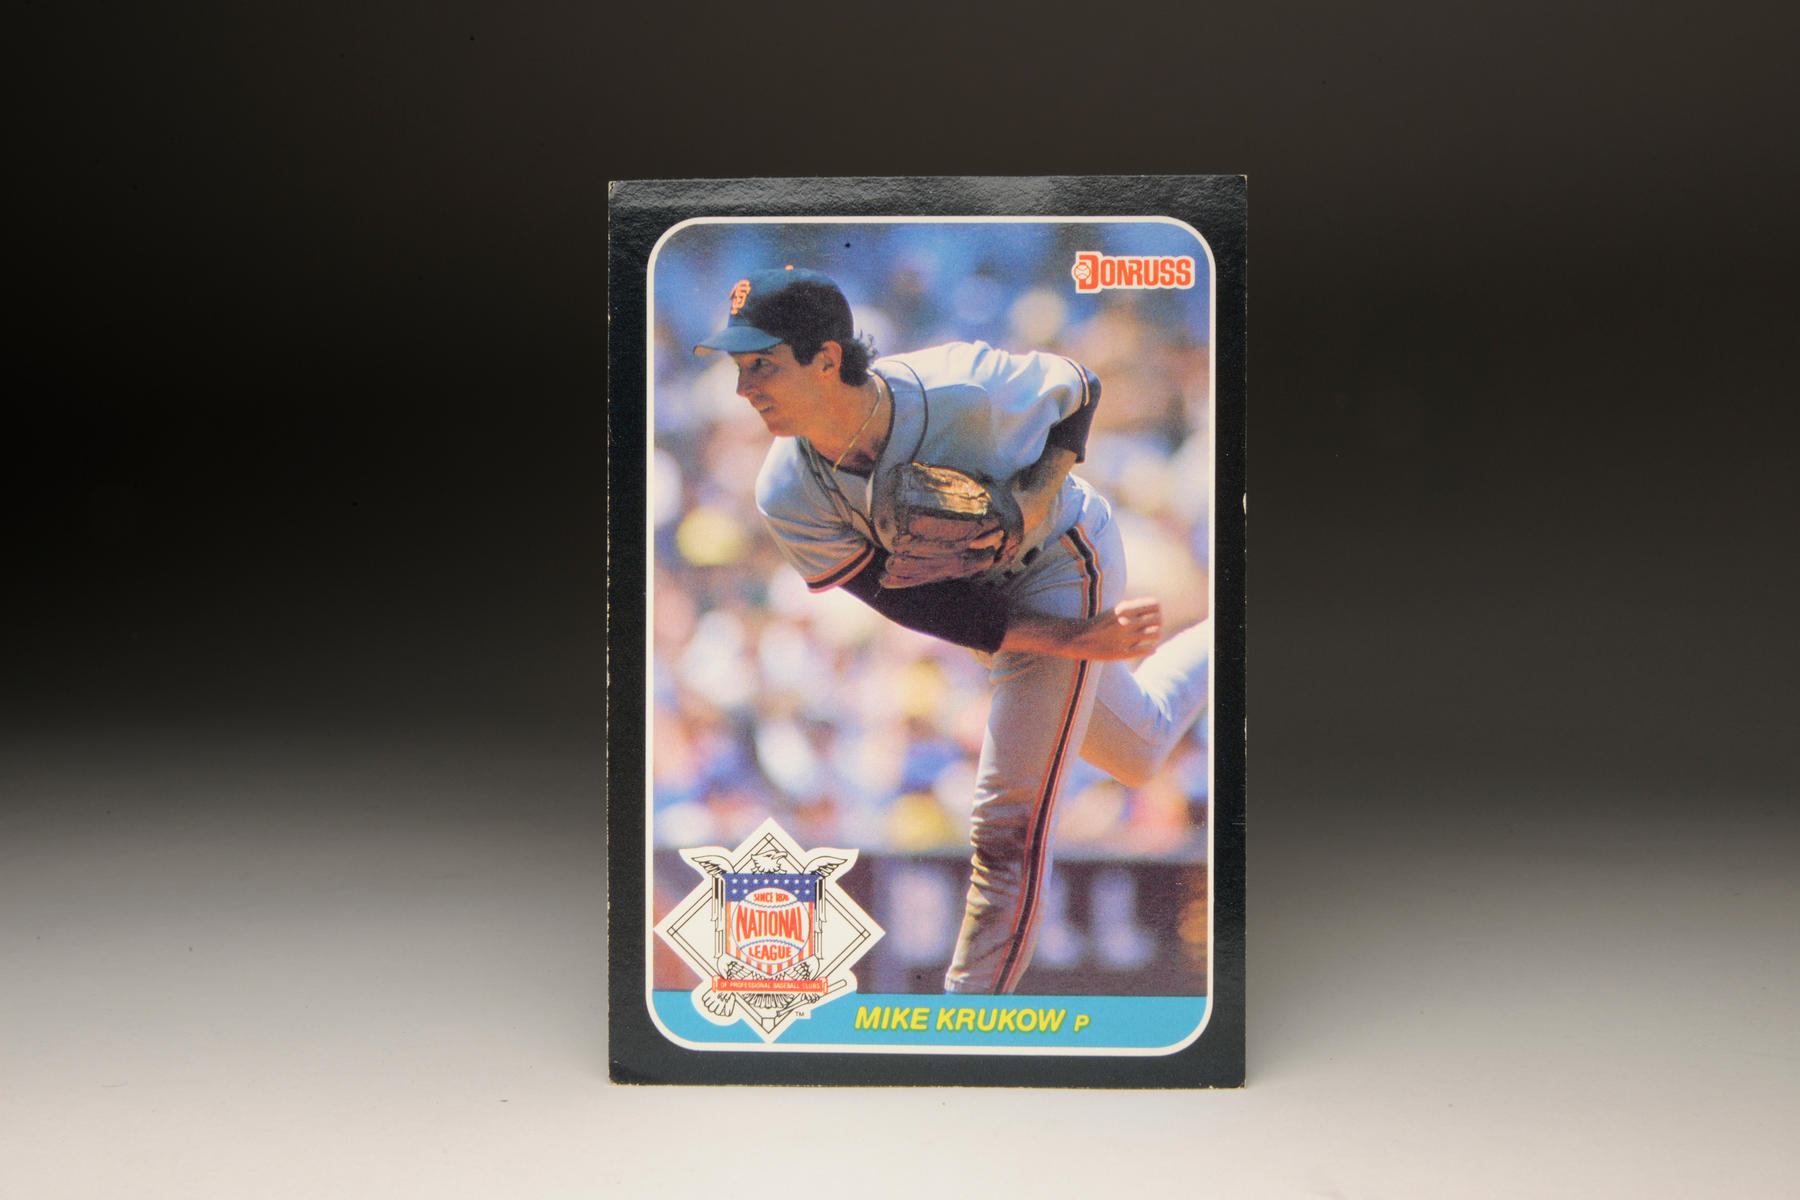 1987 Mike Krukow Donruss card. (Milo Stewart Jr. / National Baseball Hall of Fame)